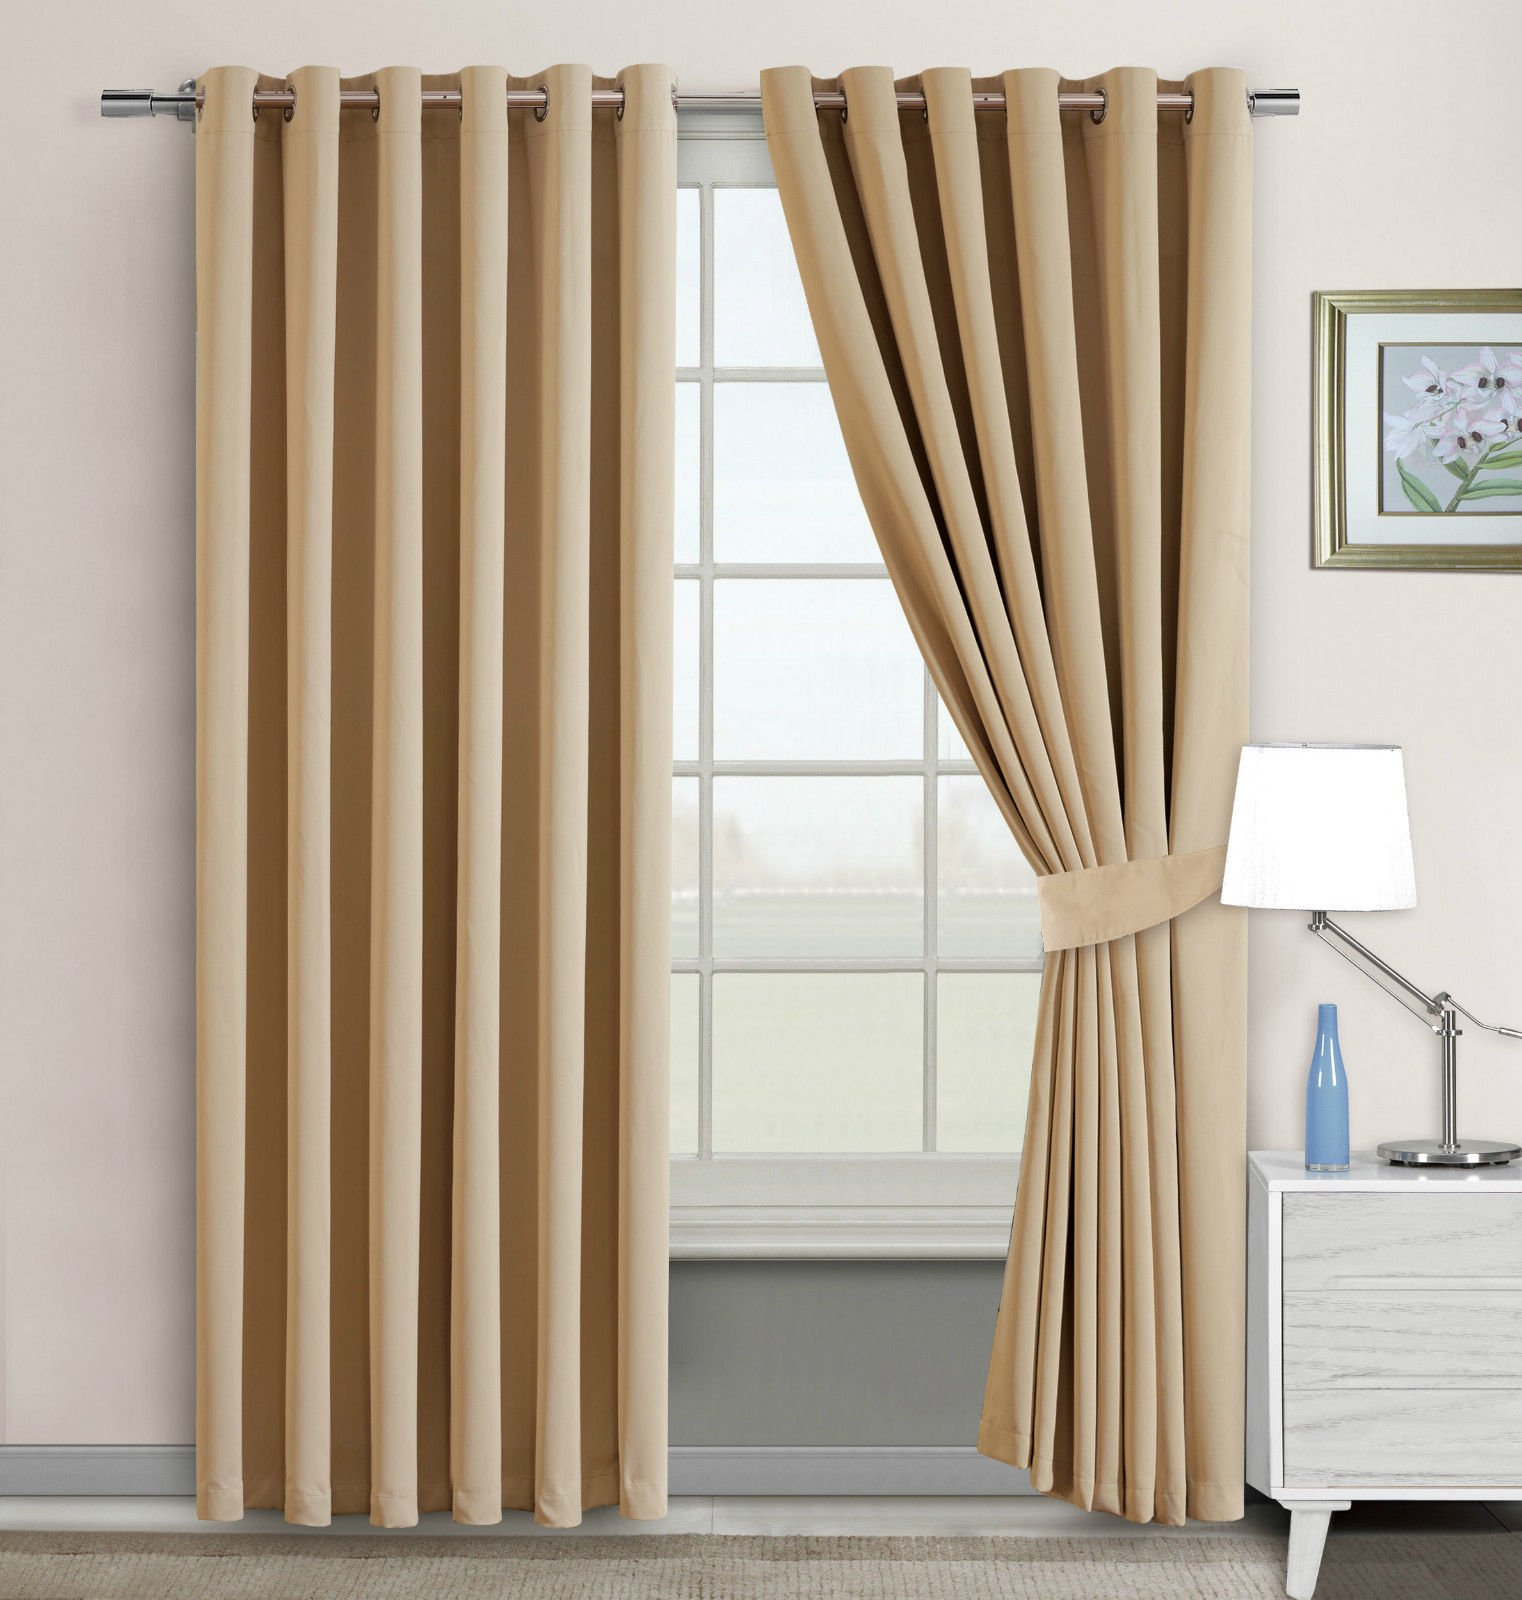 Imperial Rooms Window Blinds Blackout Eyelet Curtains Pair Of Thermal Insulated Beige 66x54